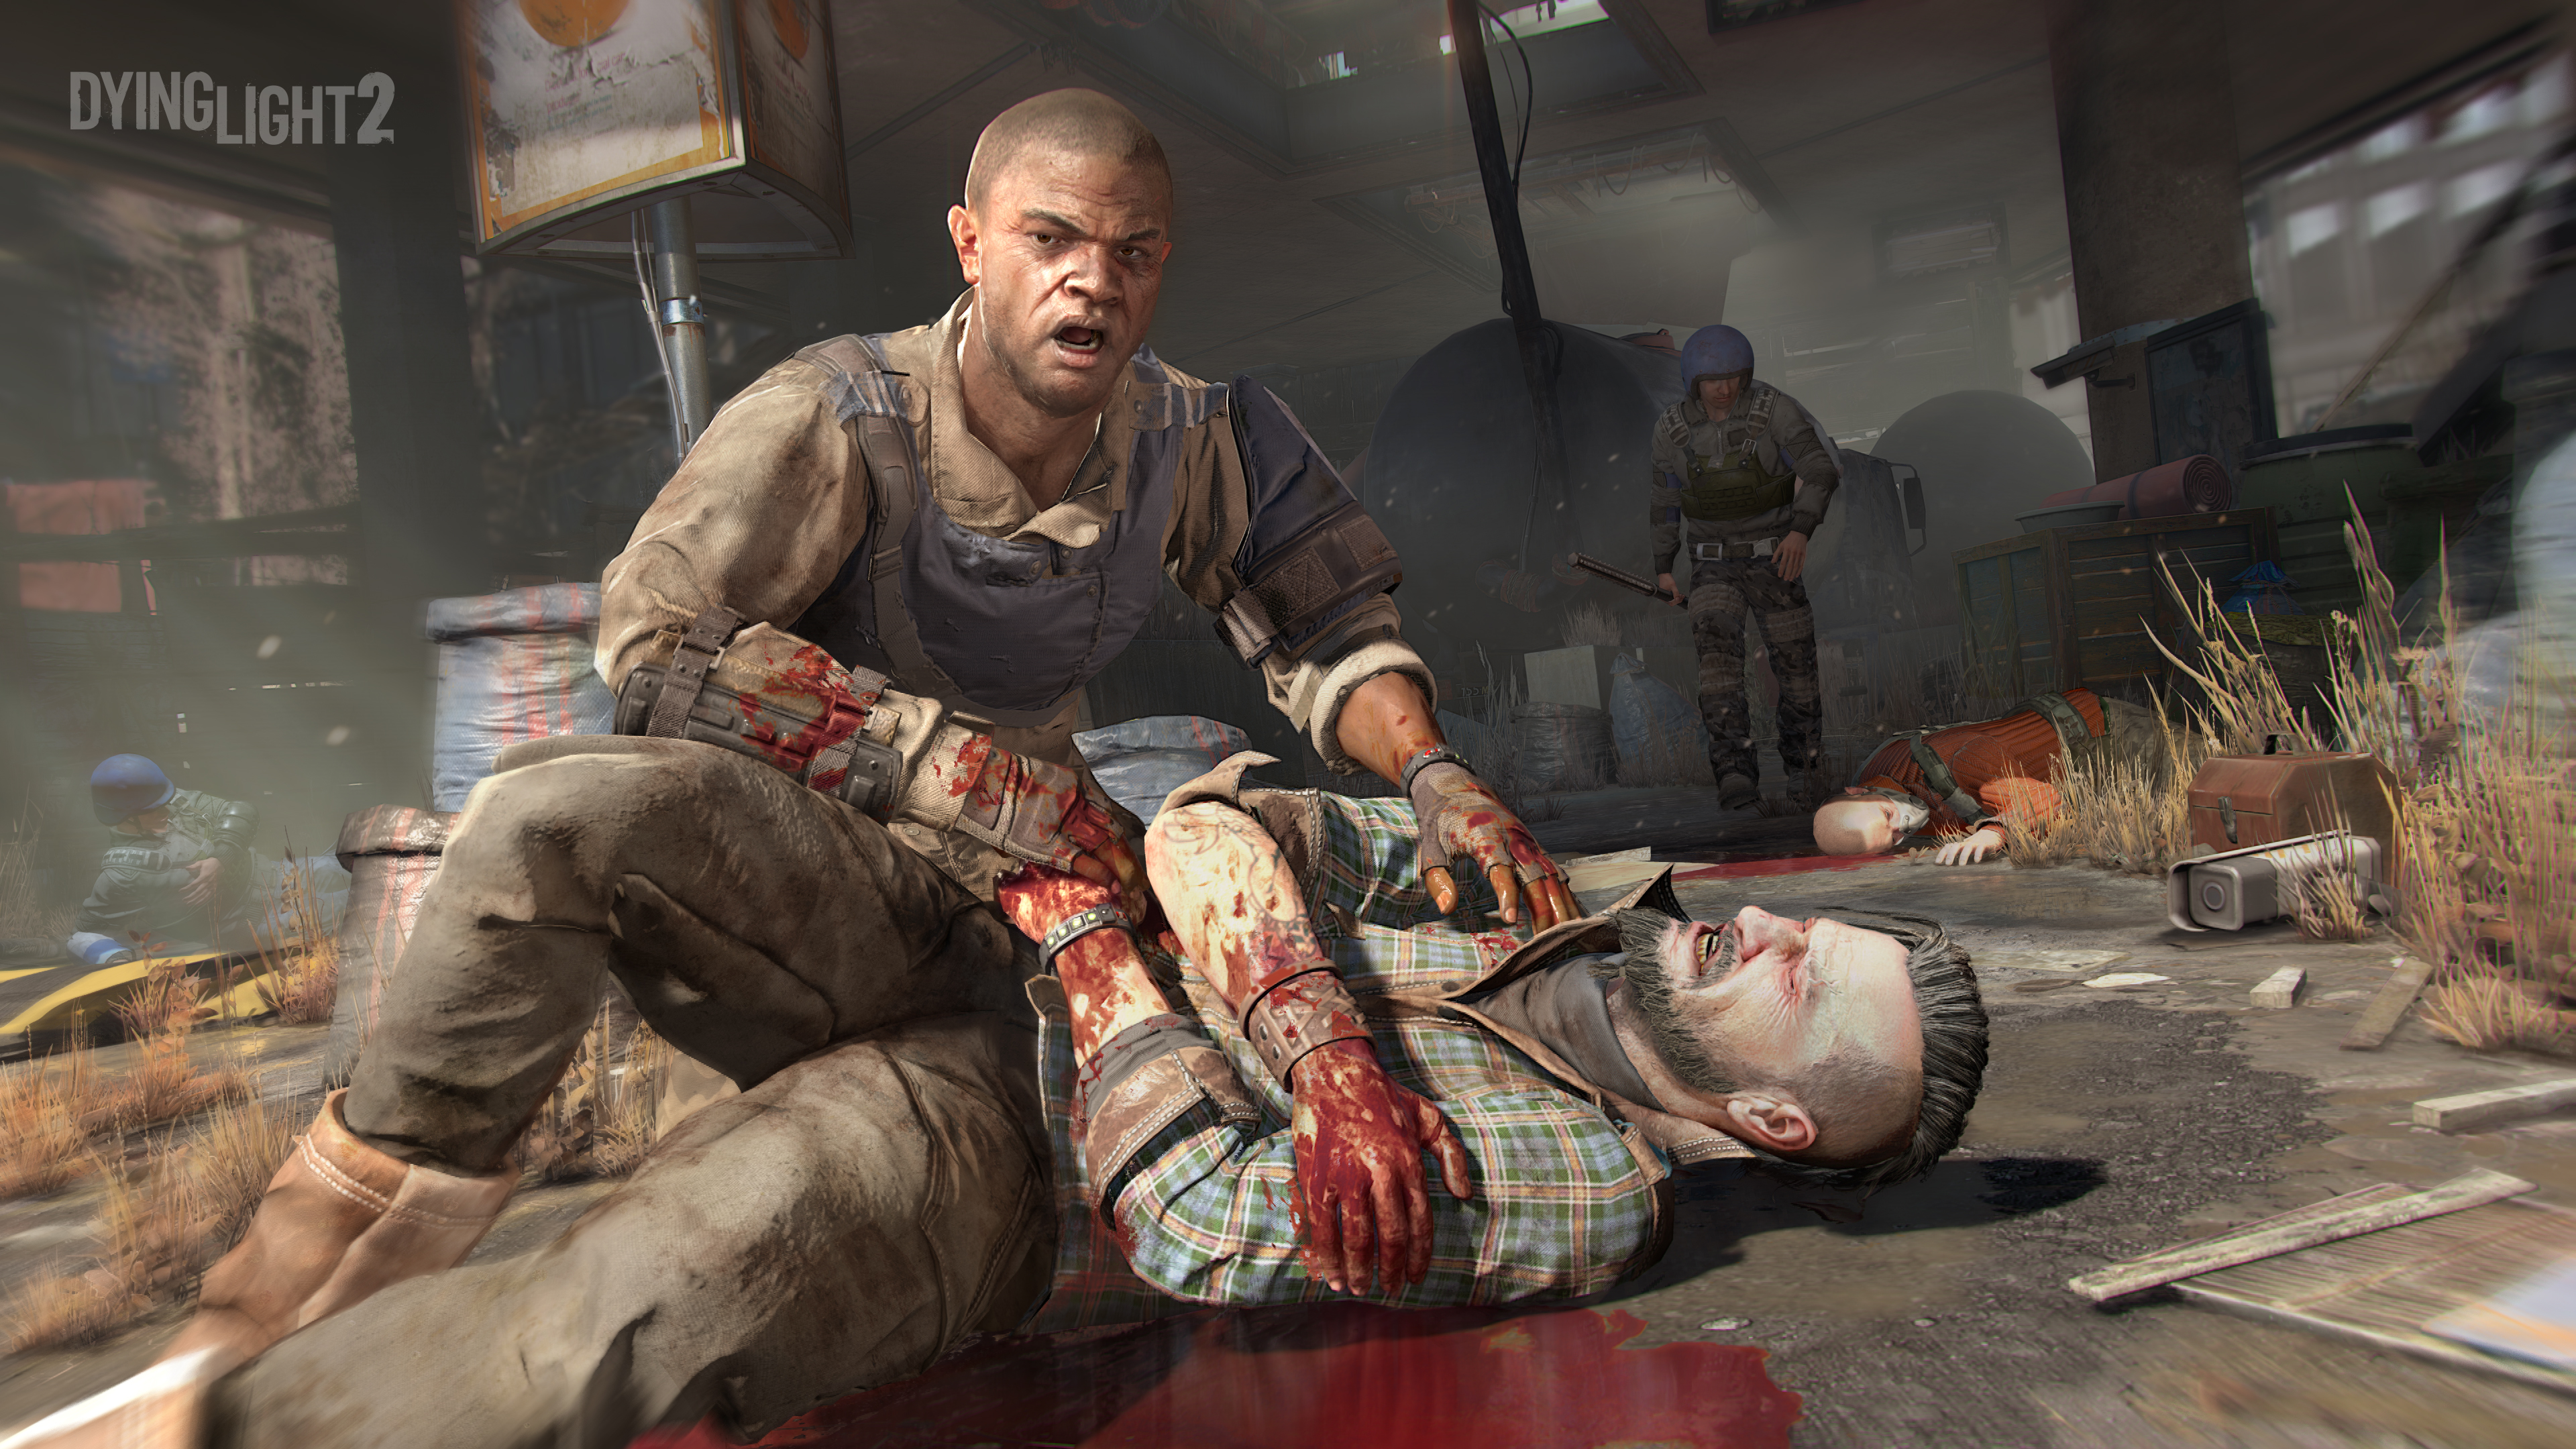 Dying Light 2 Collector's Edition may have leaked via European retailer - VG247